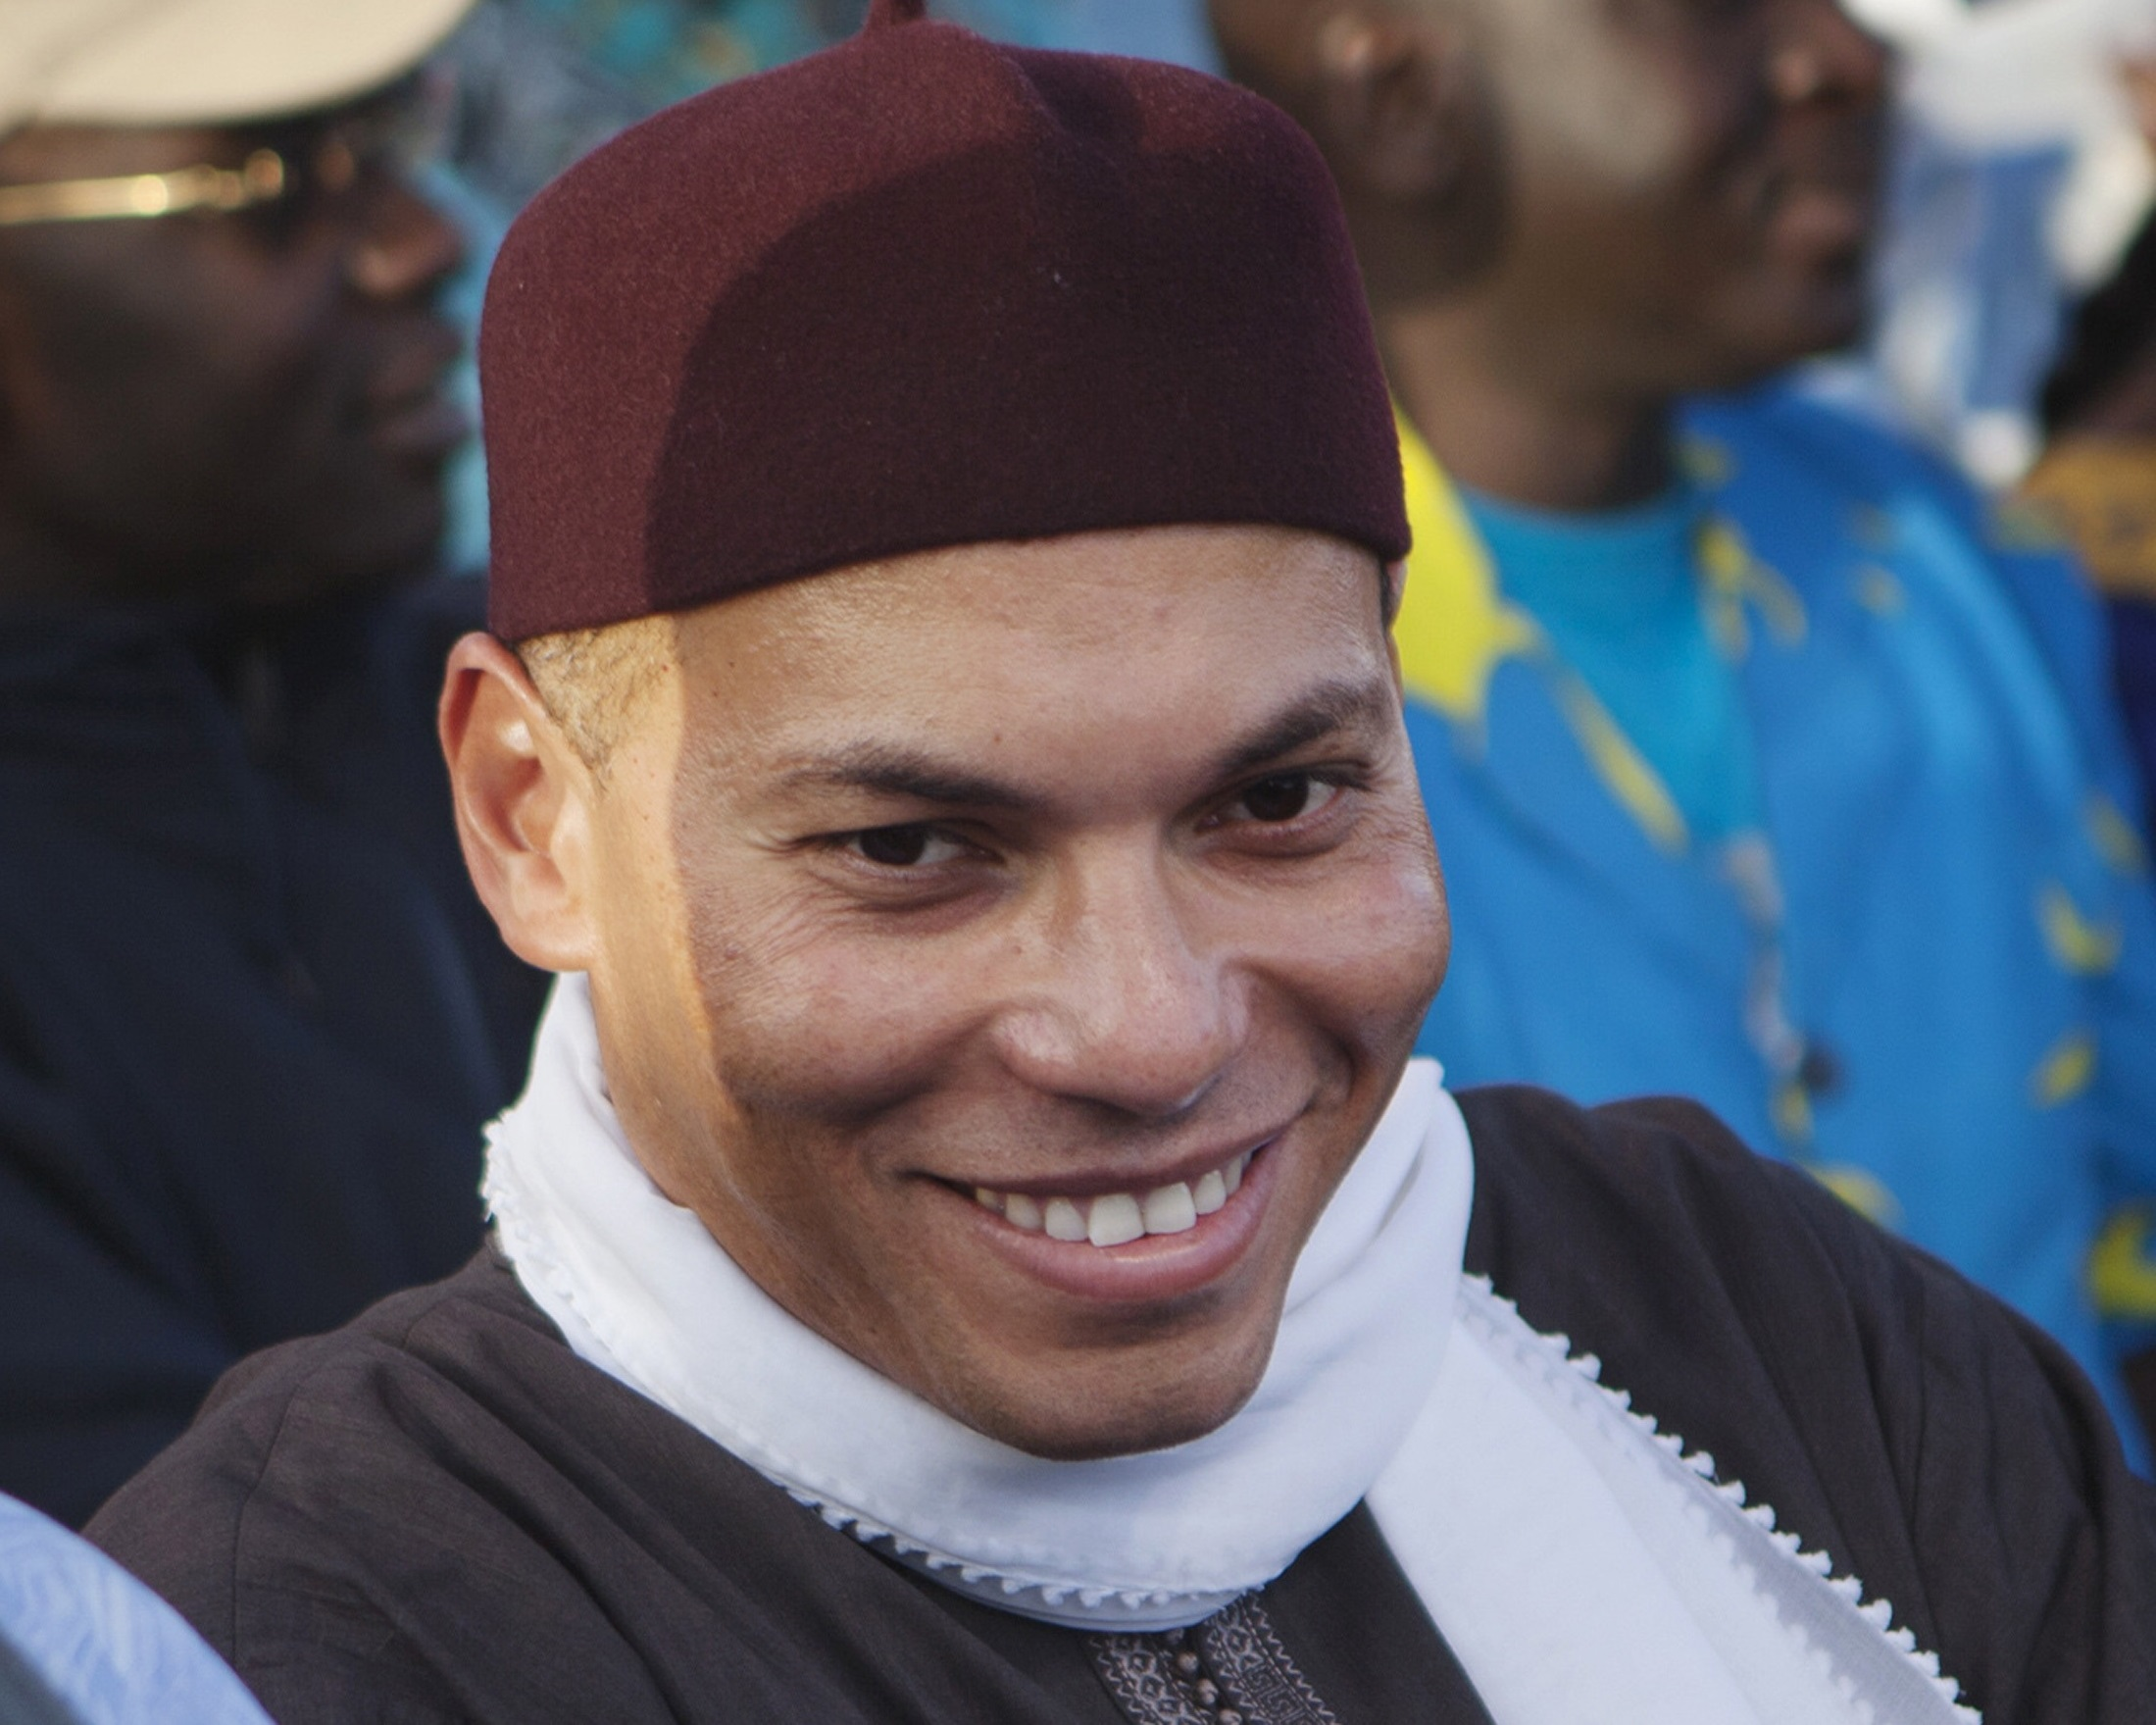 Karim Wade (C), son of Senegal's former president Abdoulaye Wade, attends a rally of his father's political party Parti Democratique Senegalais (PDS) in Dakar, in this file picture taken December 6, 2012. Senegalese police arrested Karim Wade on April 15, 2013 on suspicion of illegally amassing some $1.4 billion during his father's tenure, his lawyers said.       REUTERS/Joe Penney/Files (SENEGAL - Tags: POLITICS)